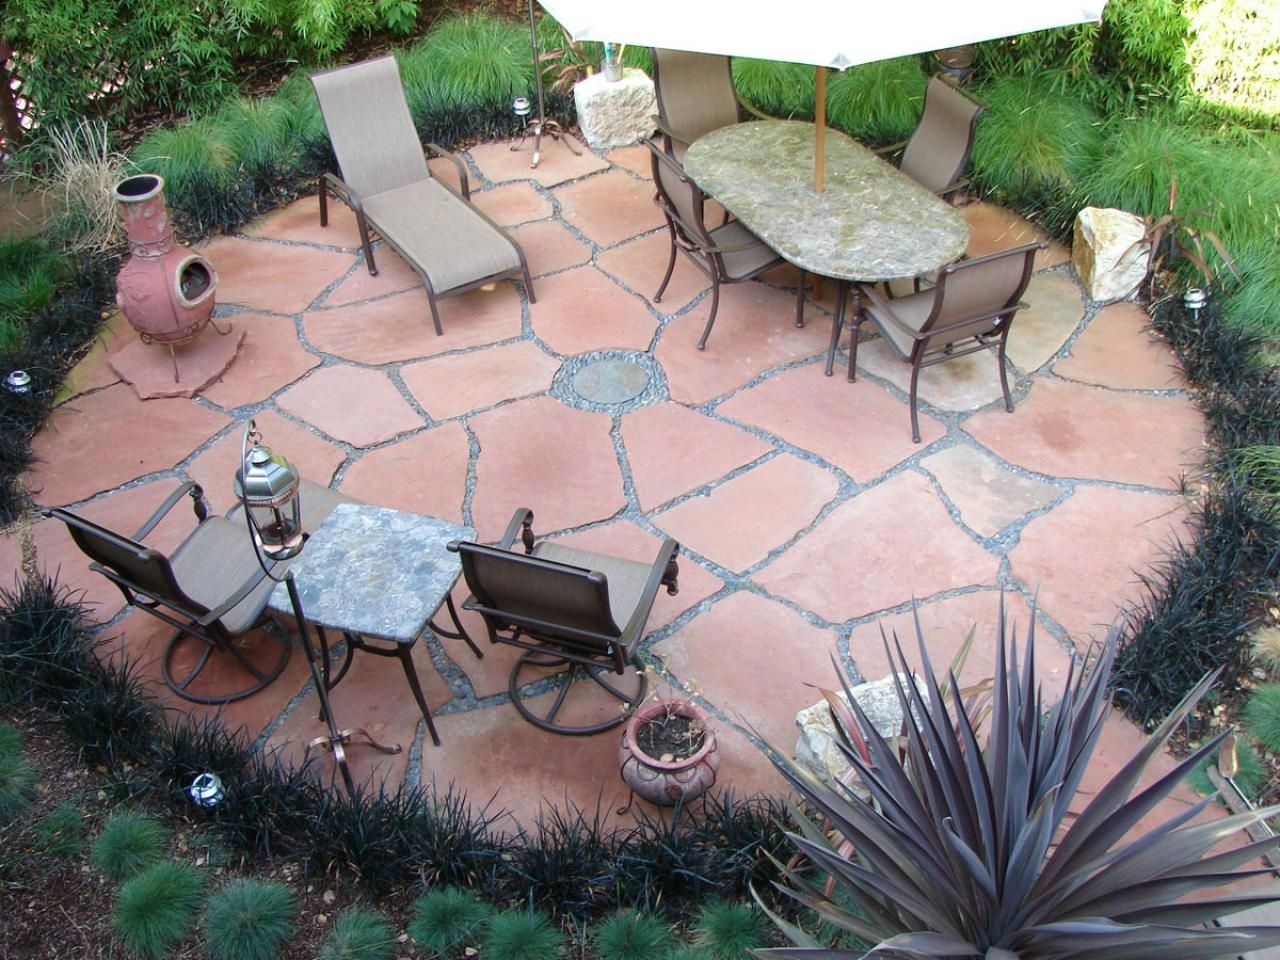 Good This Round Red Flagstone Patio Squeezes In Several Inviting Features,  Including Lounge Chairs, A Clay Chiminea And A Dining Table With An  Umbrella.